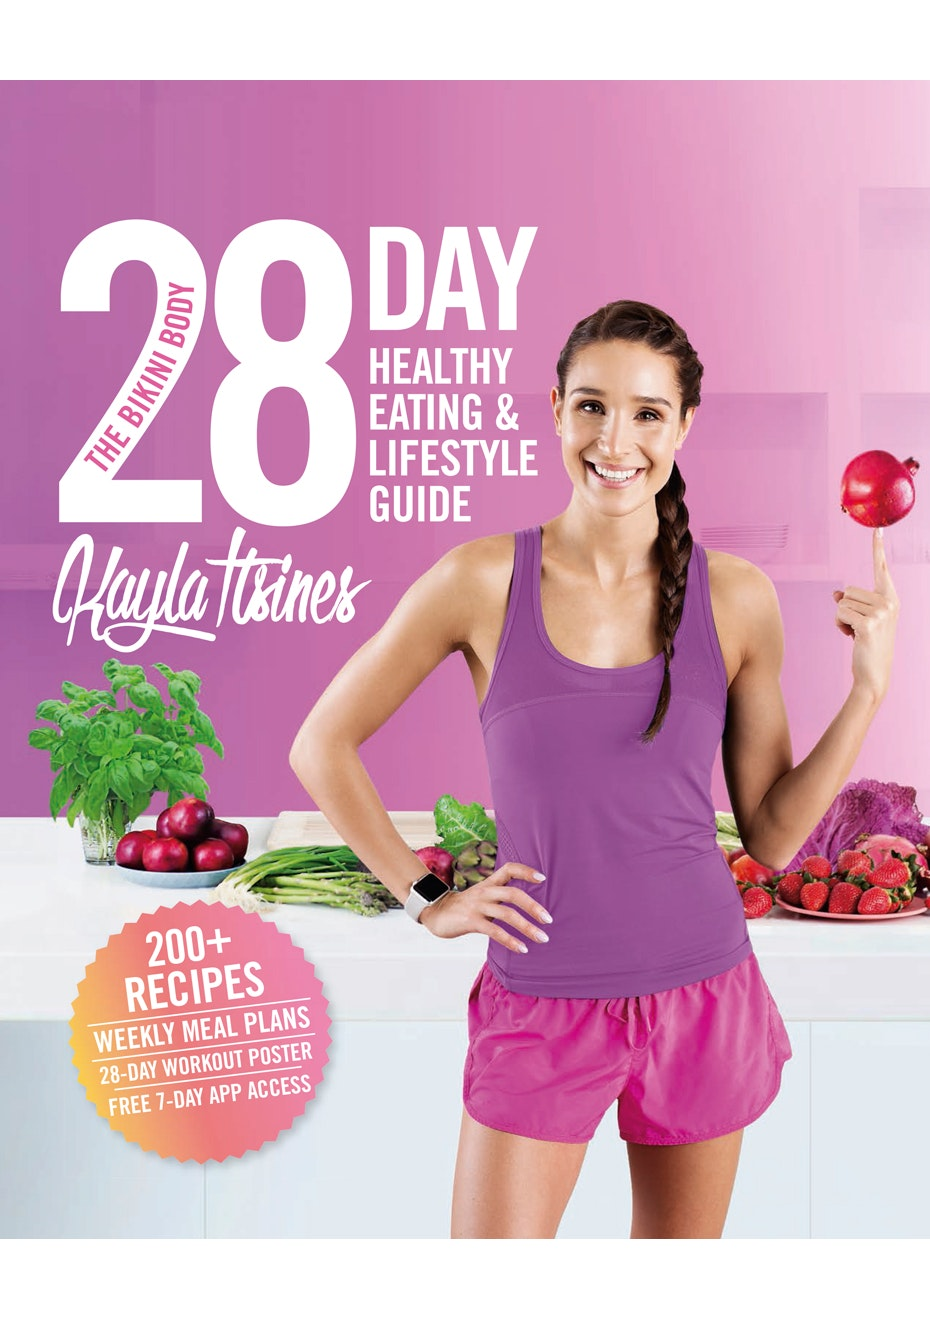 The Bikini Body 28 Day Healthy Eating & Lifestyle Guide, by Kayla Itsines